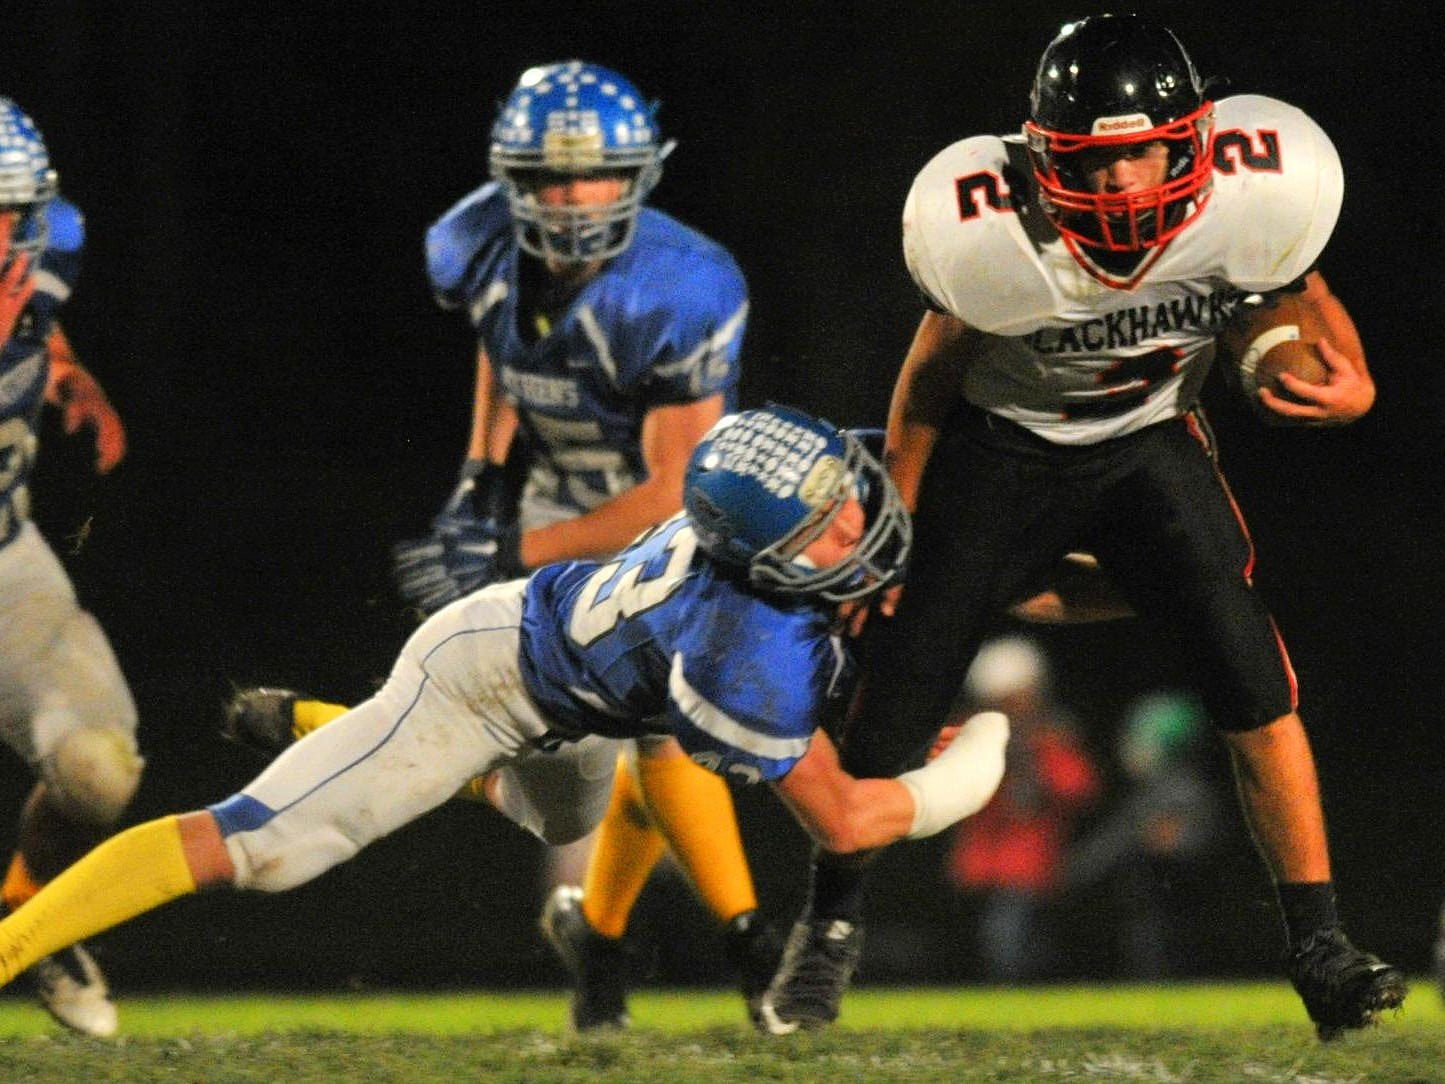 Owen-Withee's Kevin Kitlica(2), right, attempts to shake off Athens' Klay Ellenbecker(43) during Friday night's Cloverwood Conference boys football matchup at Athens High School football field.